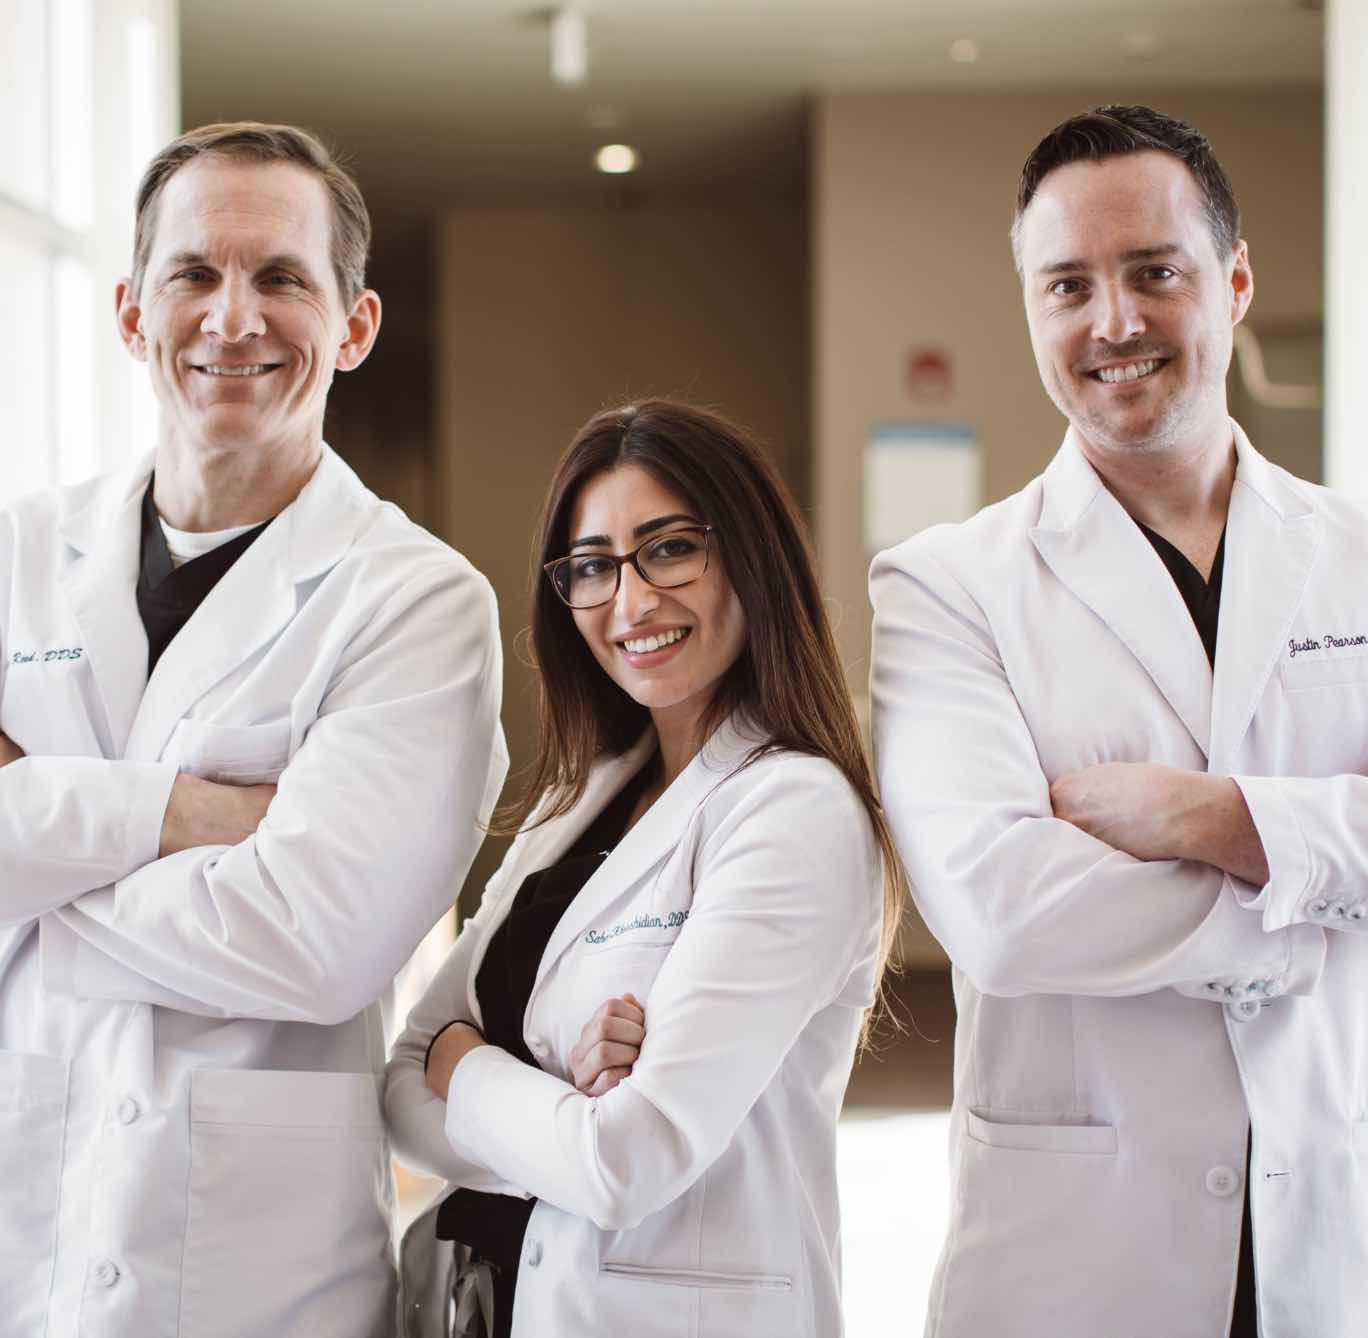 Photo of Englewood dentists, Dr. Thomas Reed, Dr. Sahel Khorshidian, and Dr. Justin Pearson